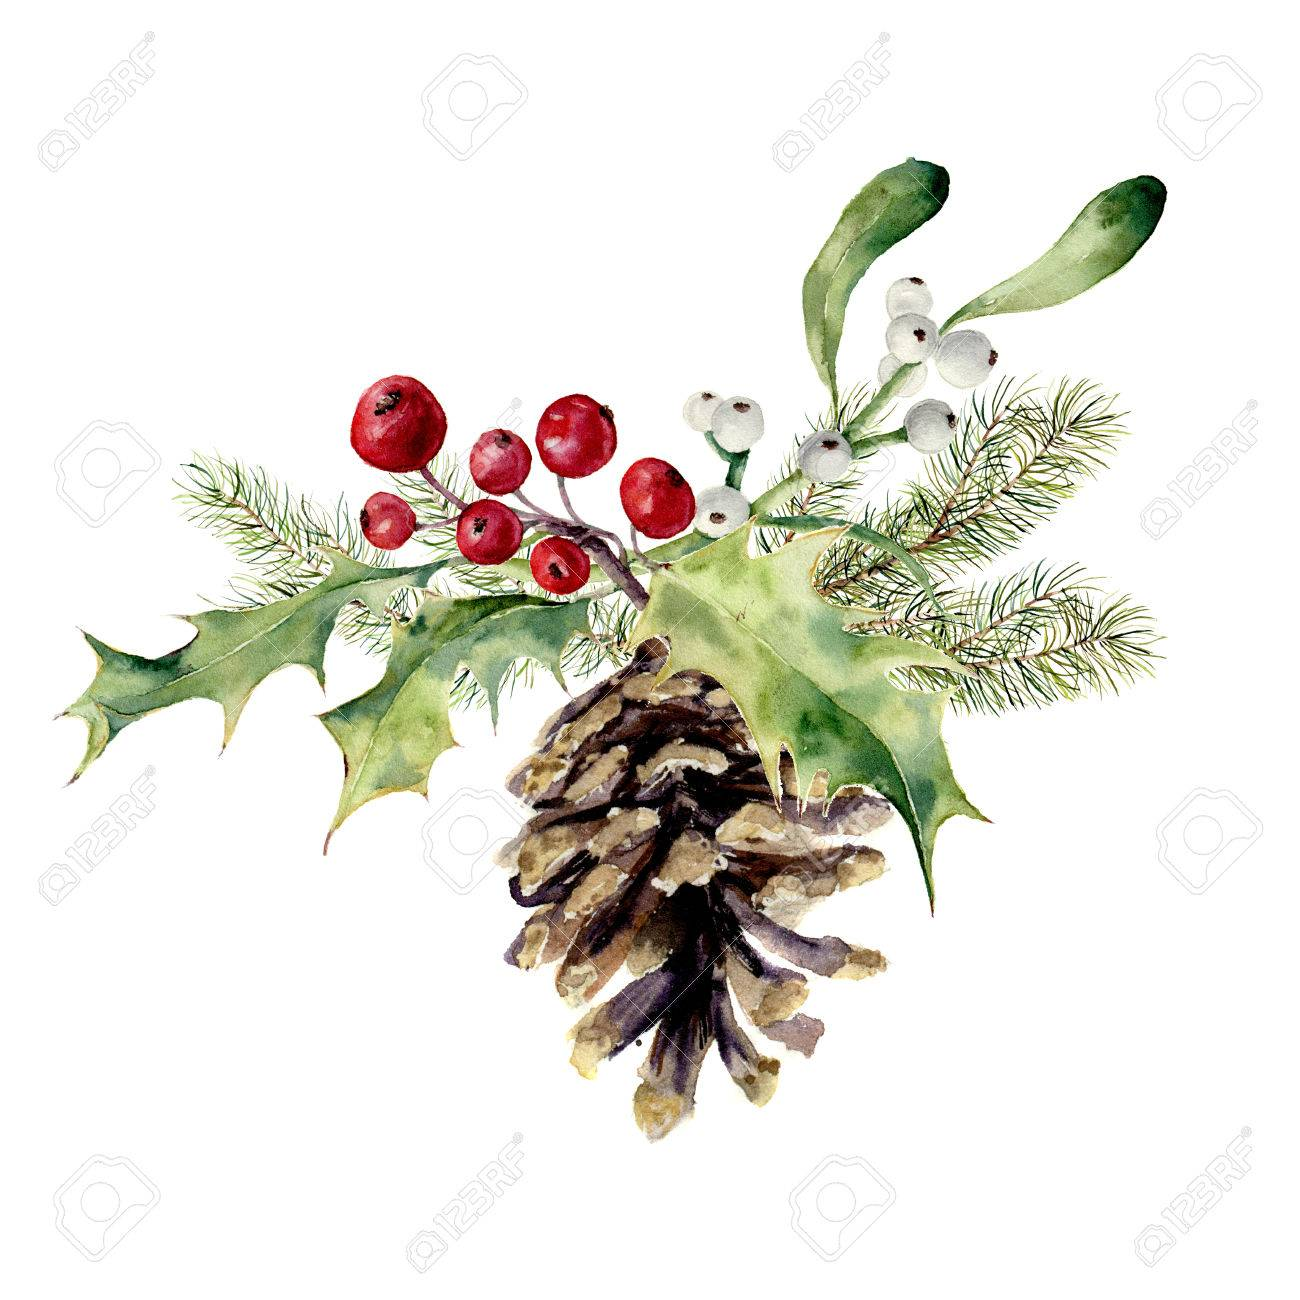 Watercolor fir cone with christmas decor. Pine cone with christmas tree branch, holly and mistletoe on white background. Party element for design, print. - 65145307